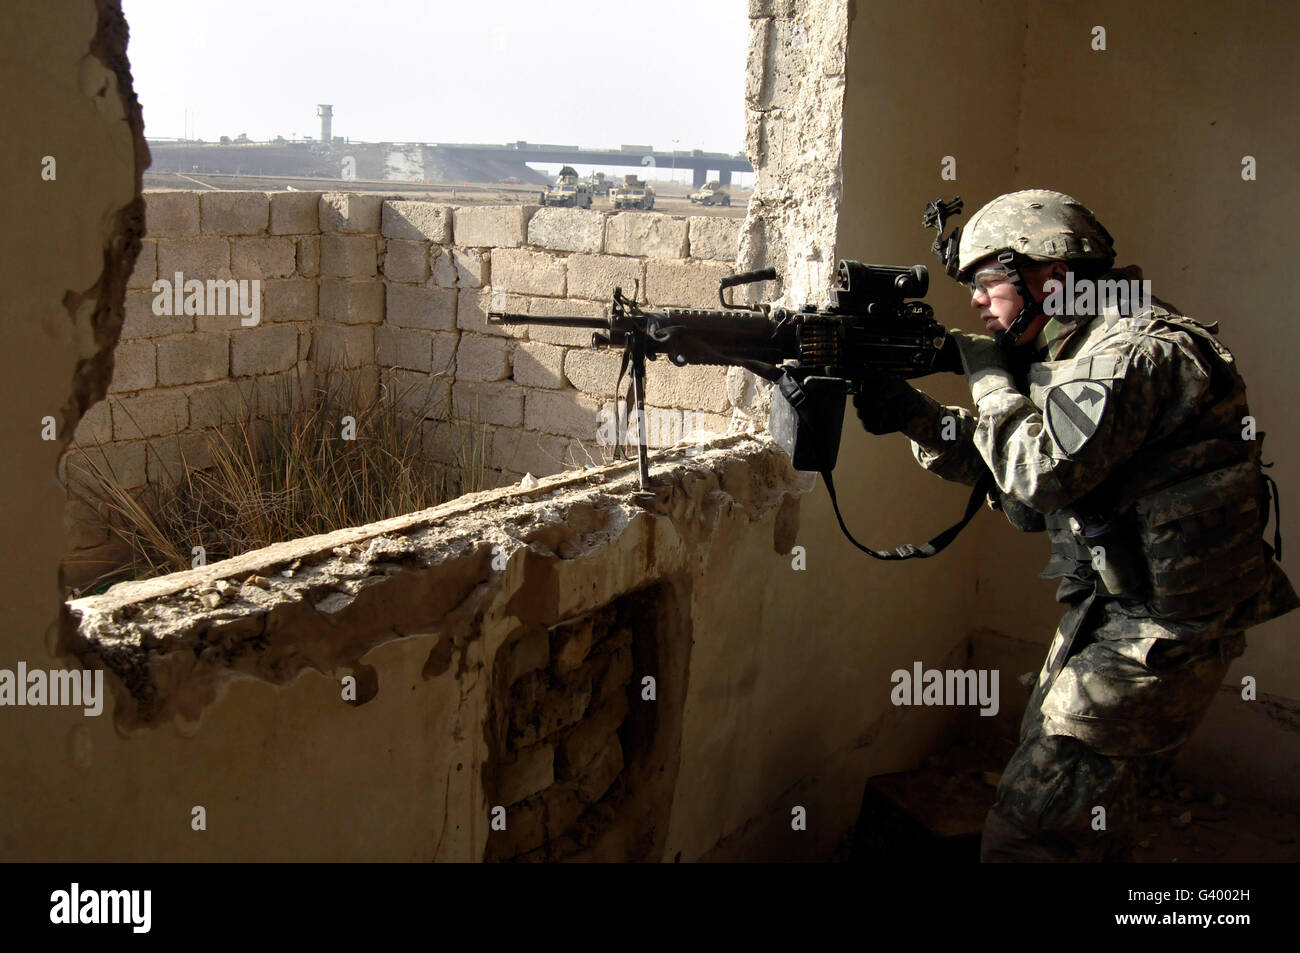 U.S. Army soldier searching for contacts during a cordon and search operation in western Baghdad, Iraq. - Stock Image